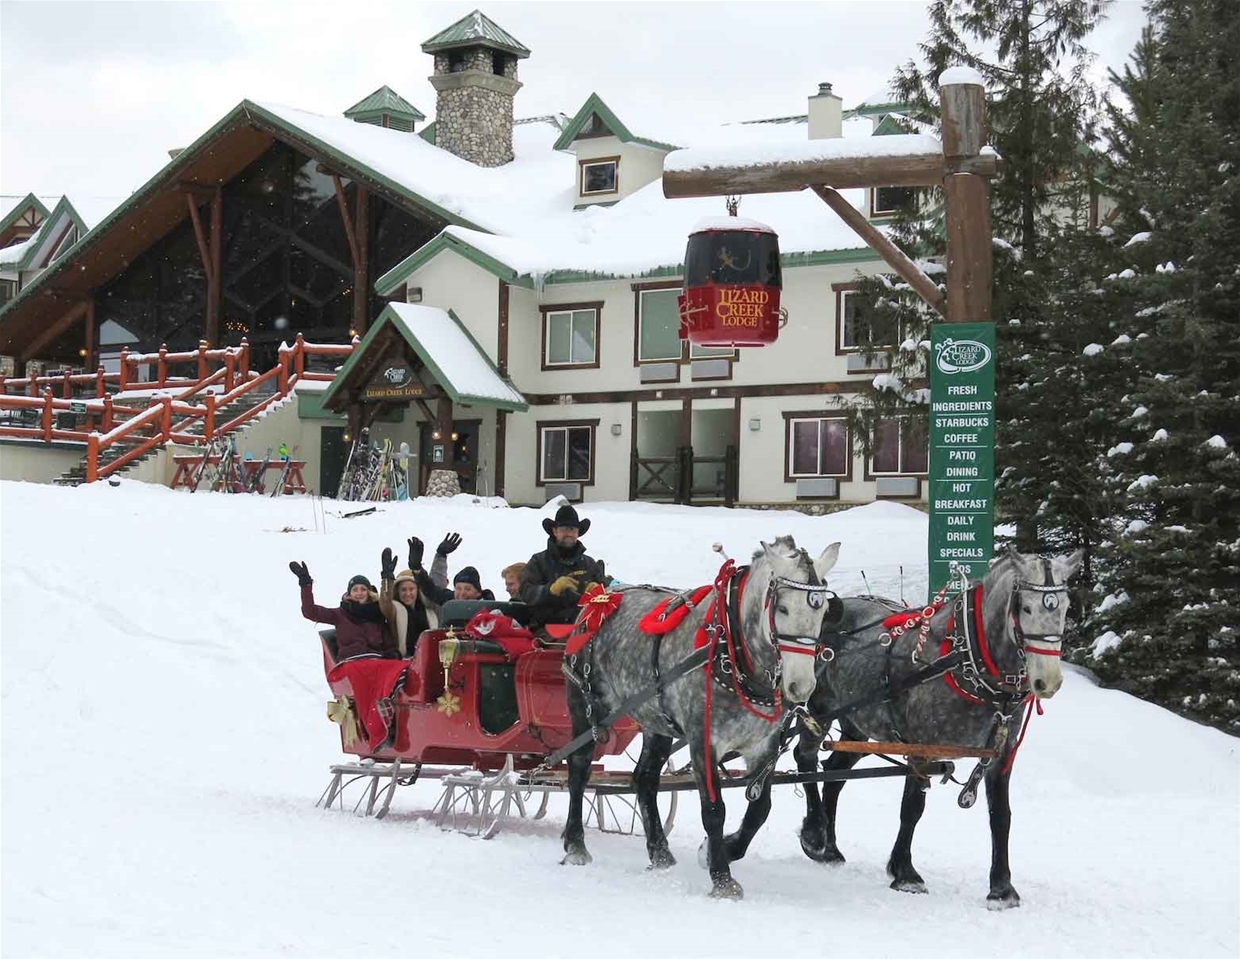 238 best Horse Sleighs & Carriage's images on Pinterest ... |Horse Drawn Sleigh Rides Christmas